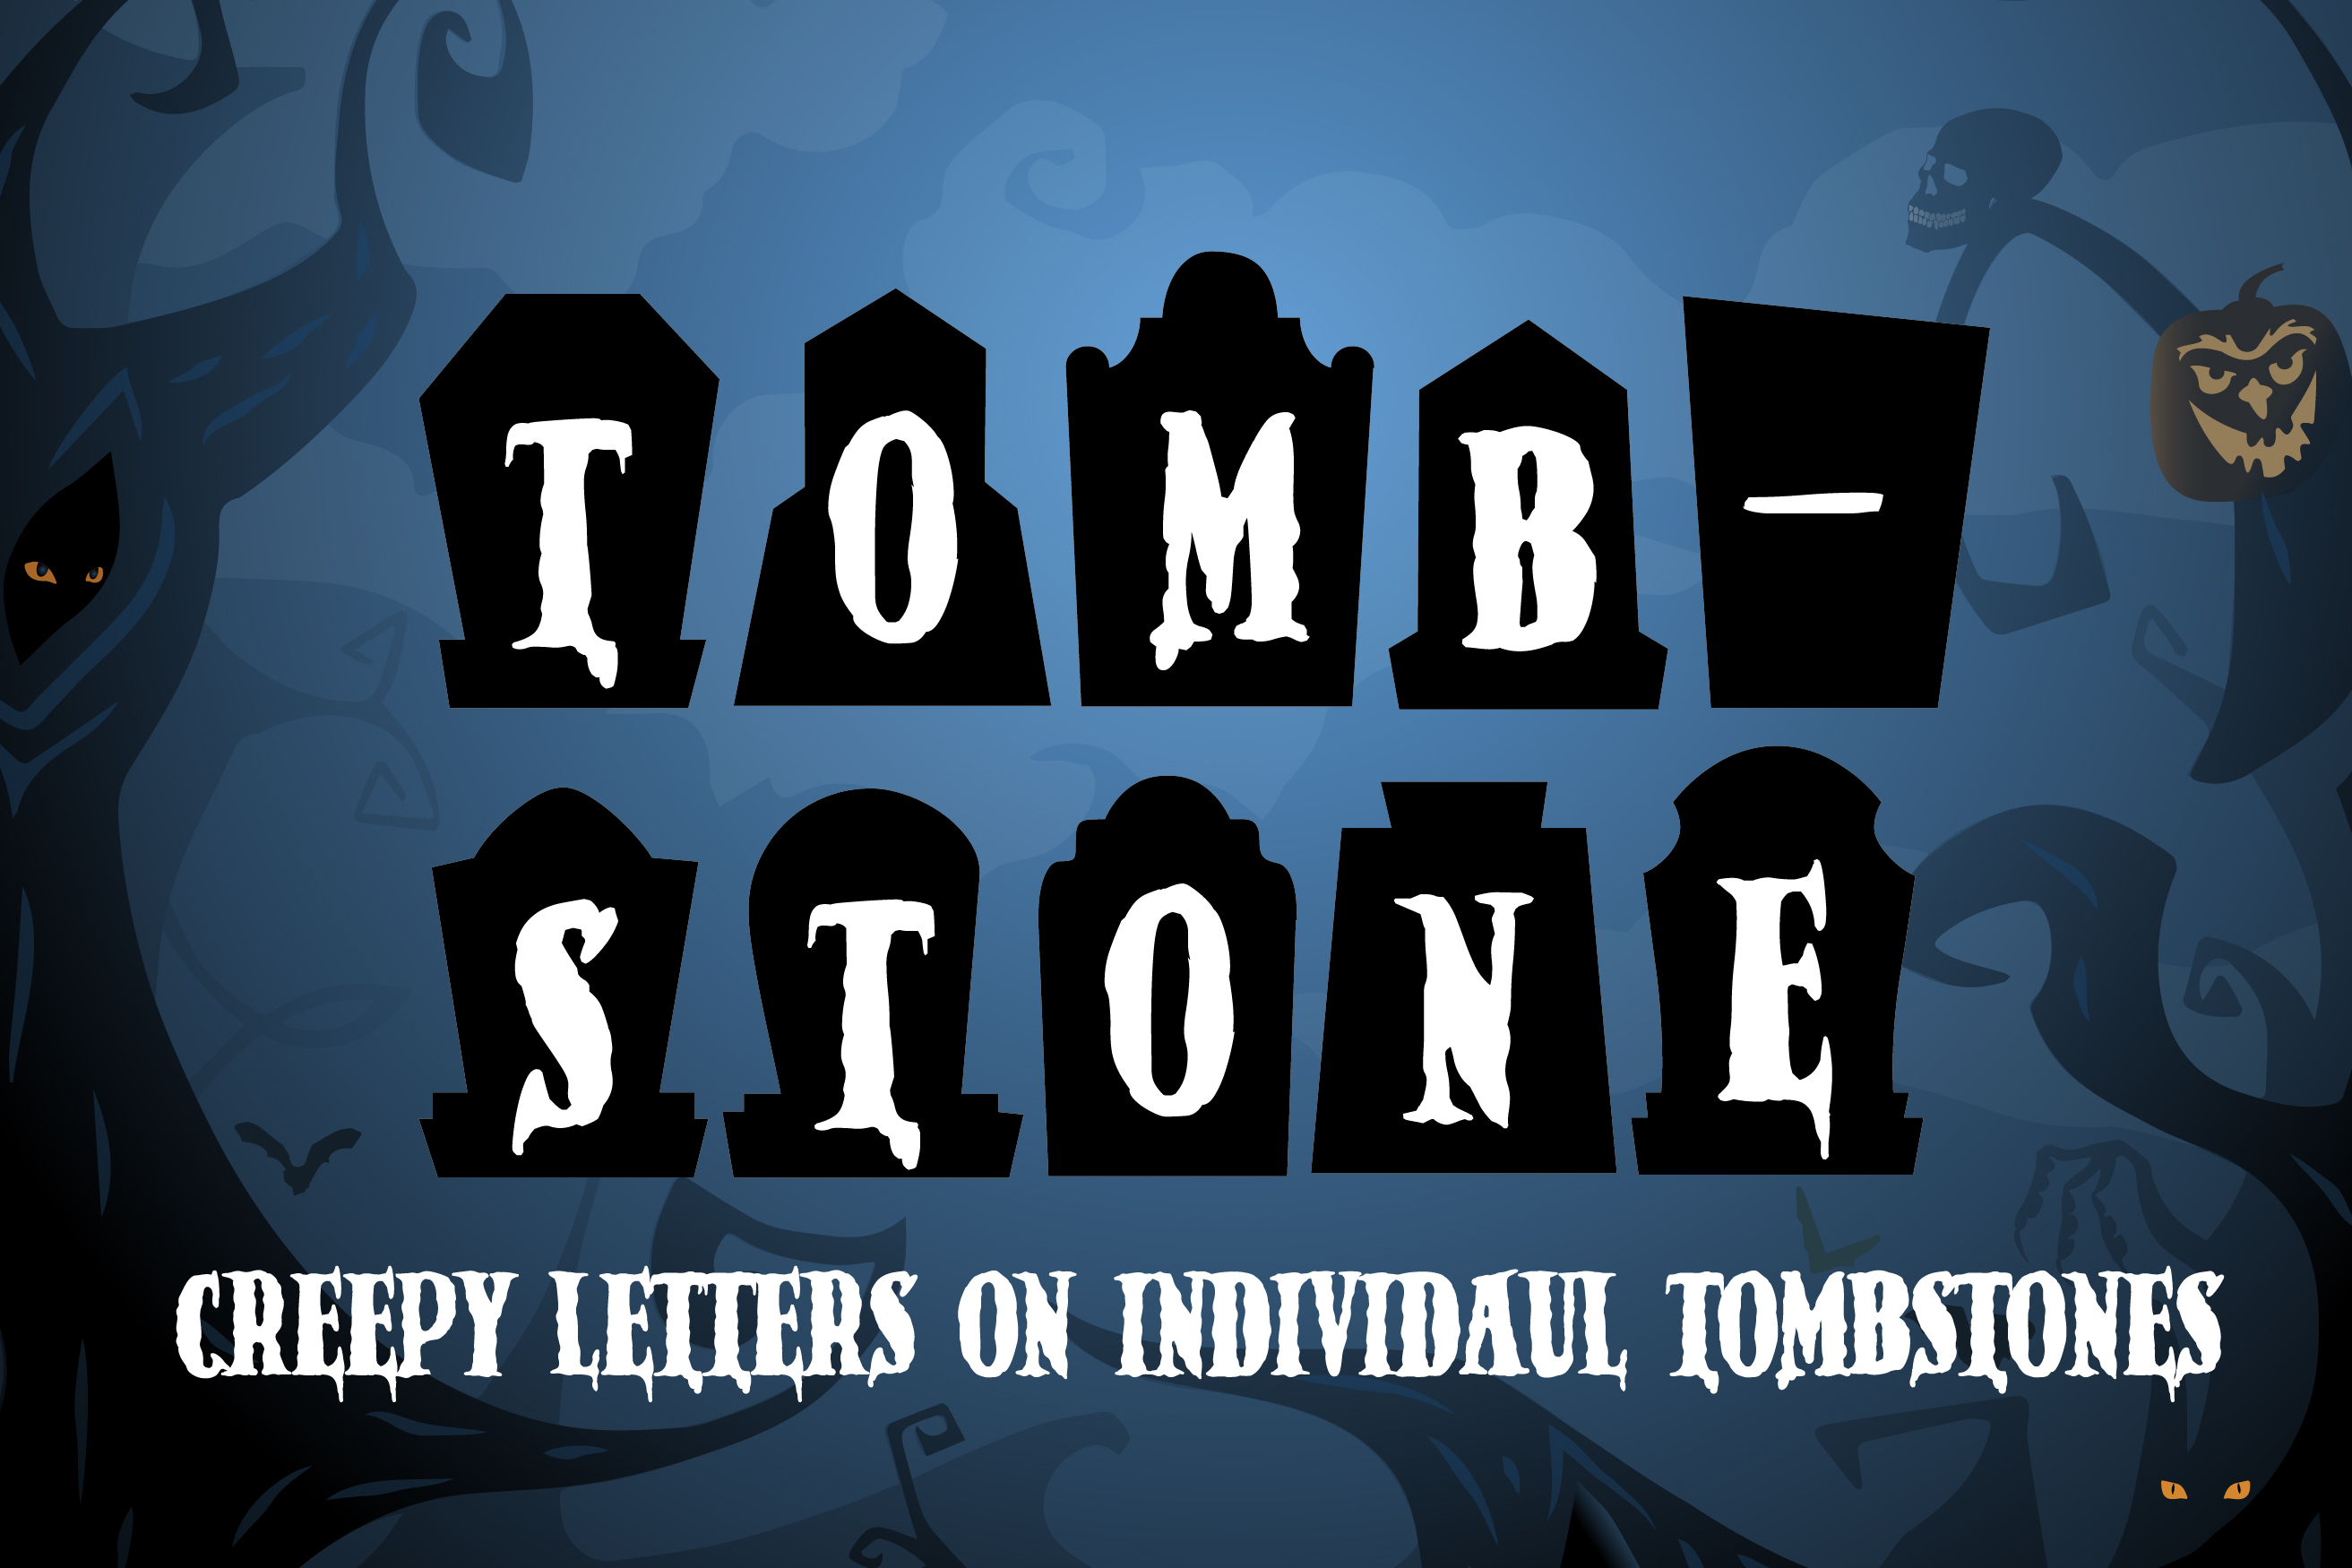 An example of a decorative font called Tombstone